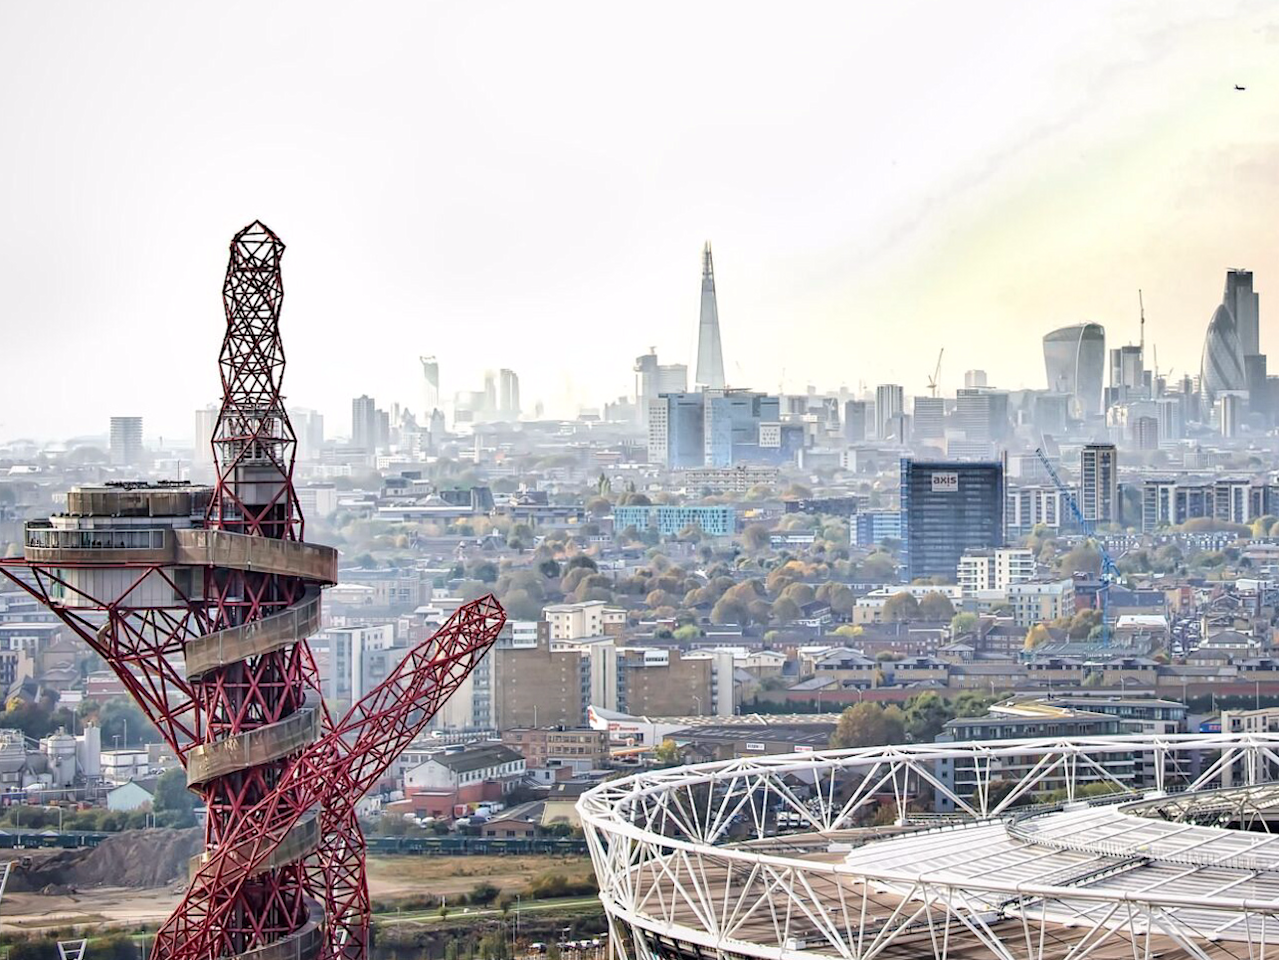 Time-lapse footage shows the rapid development of high-rise buildings around London's Olympic Park since 2014